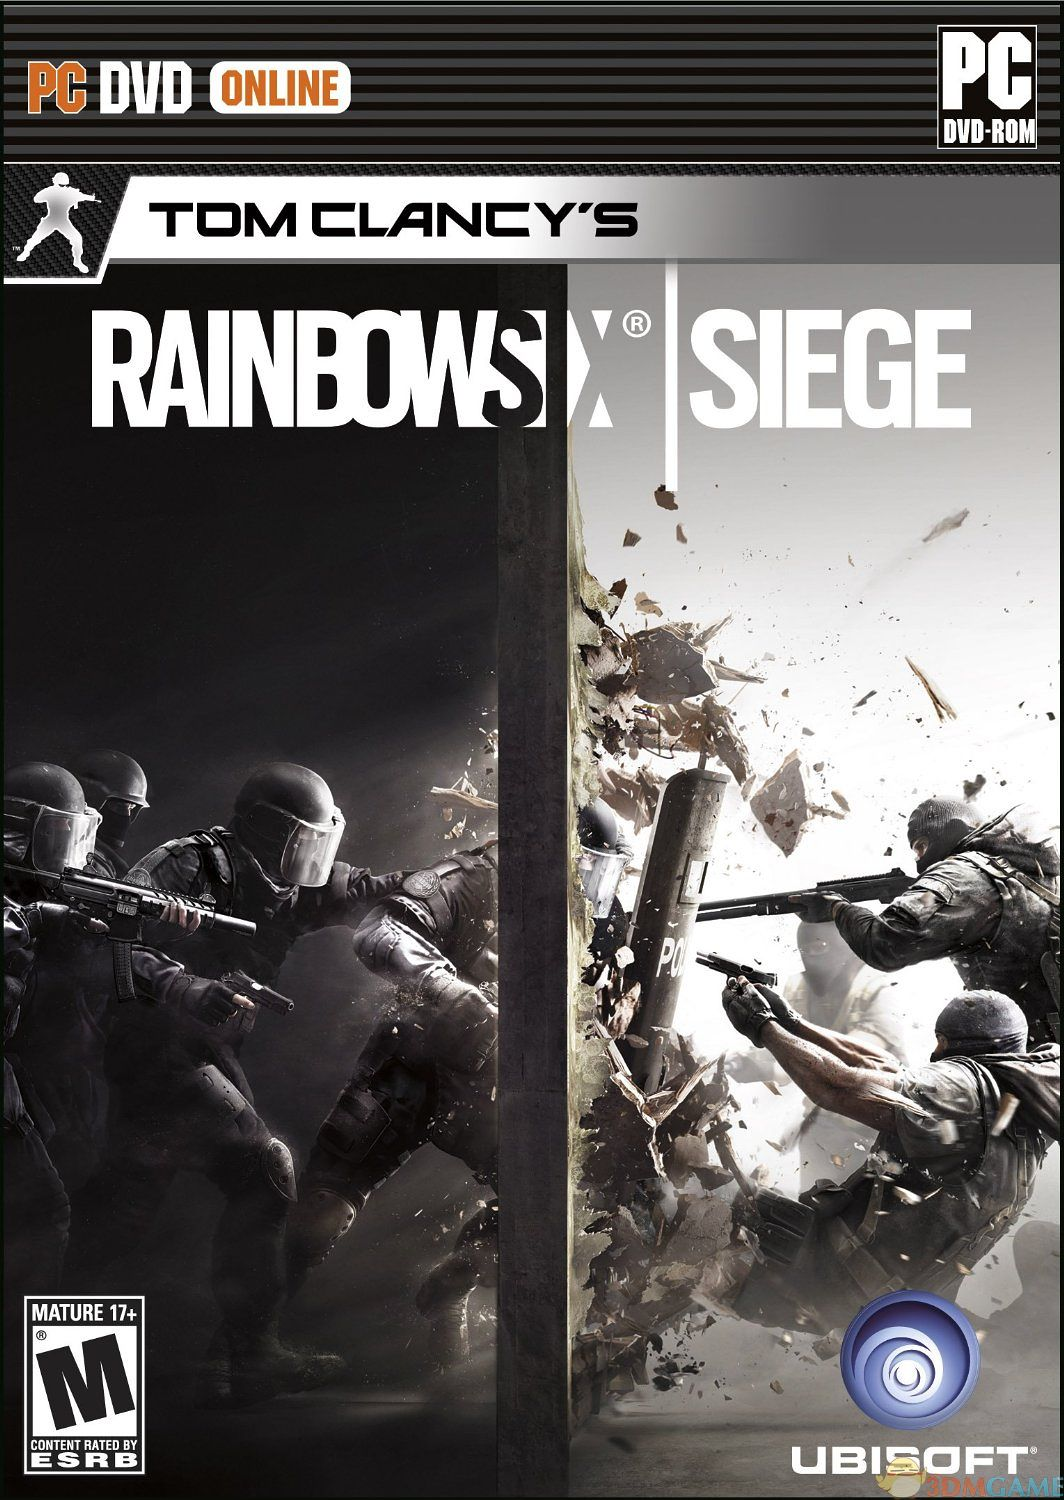 Tom Clancy's Rainbow Six Siege ESPAÑOL PC Full Cover Caratula